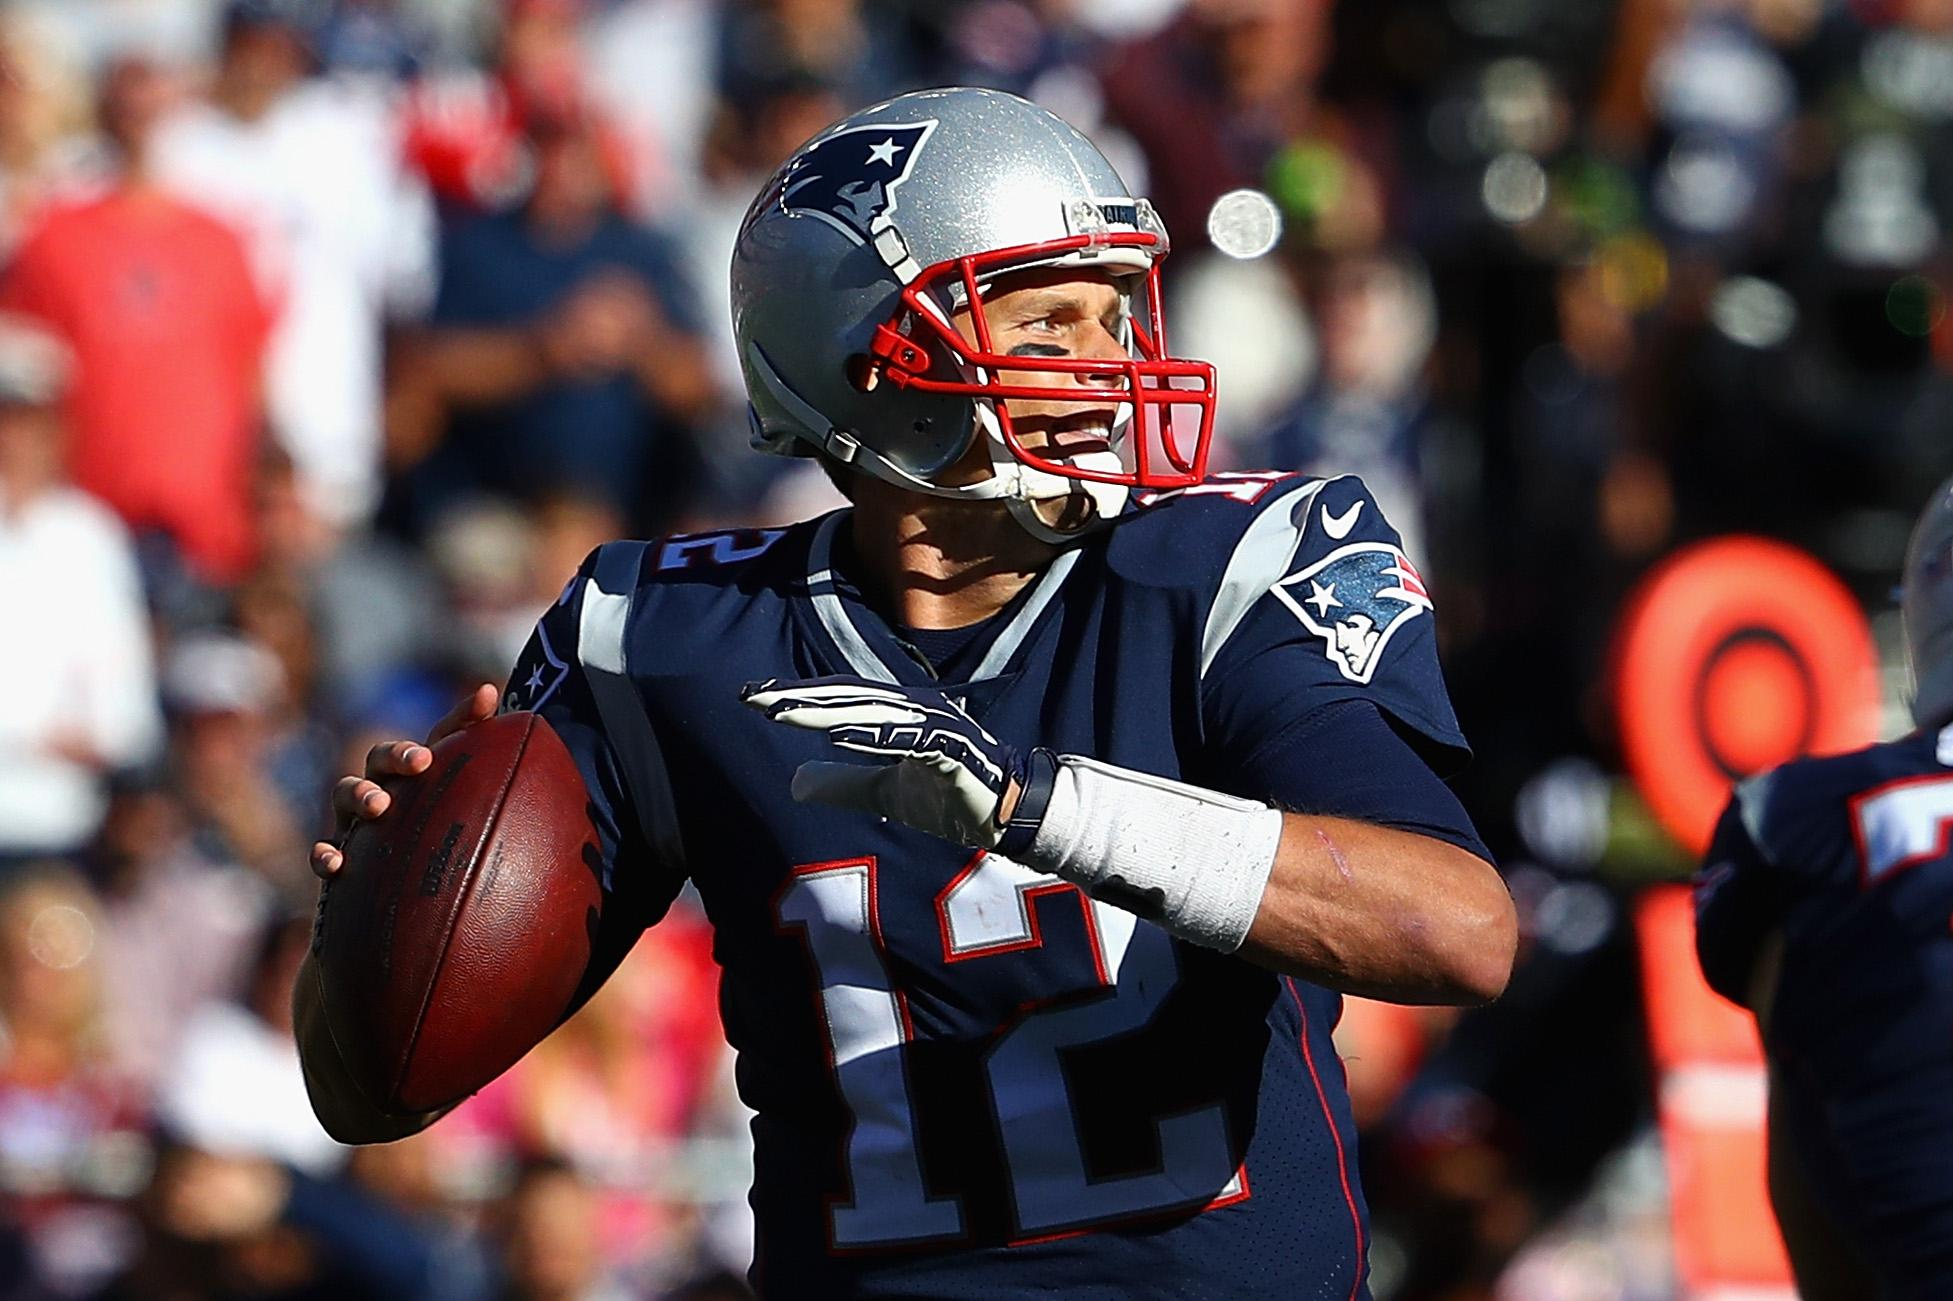 New England Patriots v. Tampa Bay Buccaneers projections and predictions